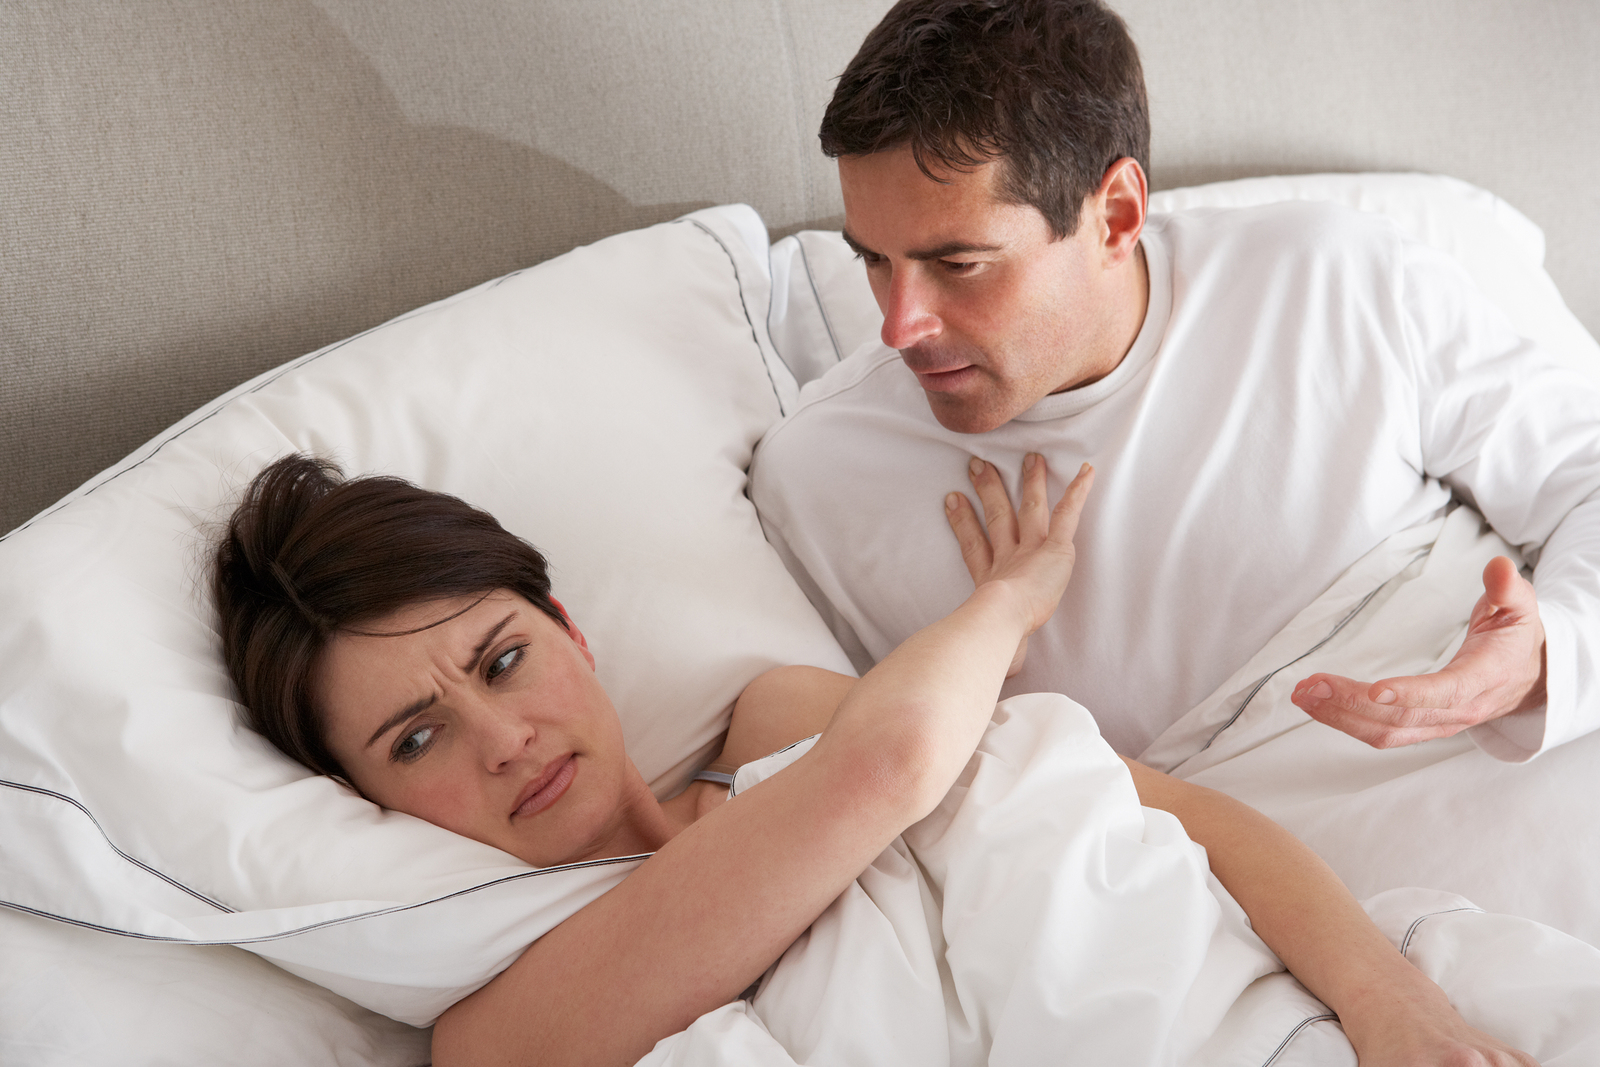 bigstock-Couple-With-Problems-Having-Di-17601614